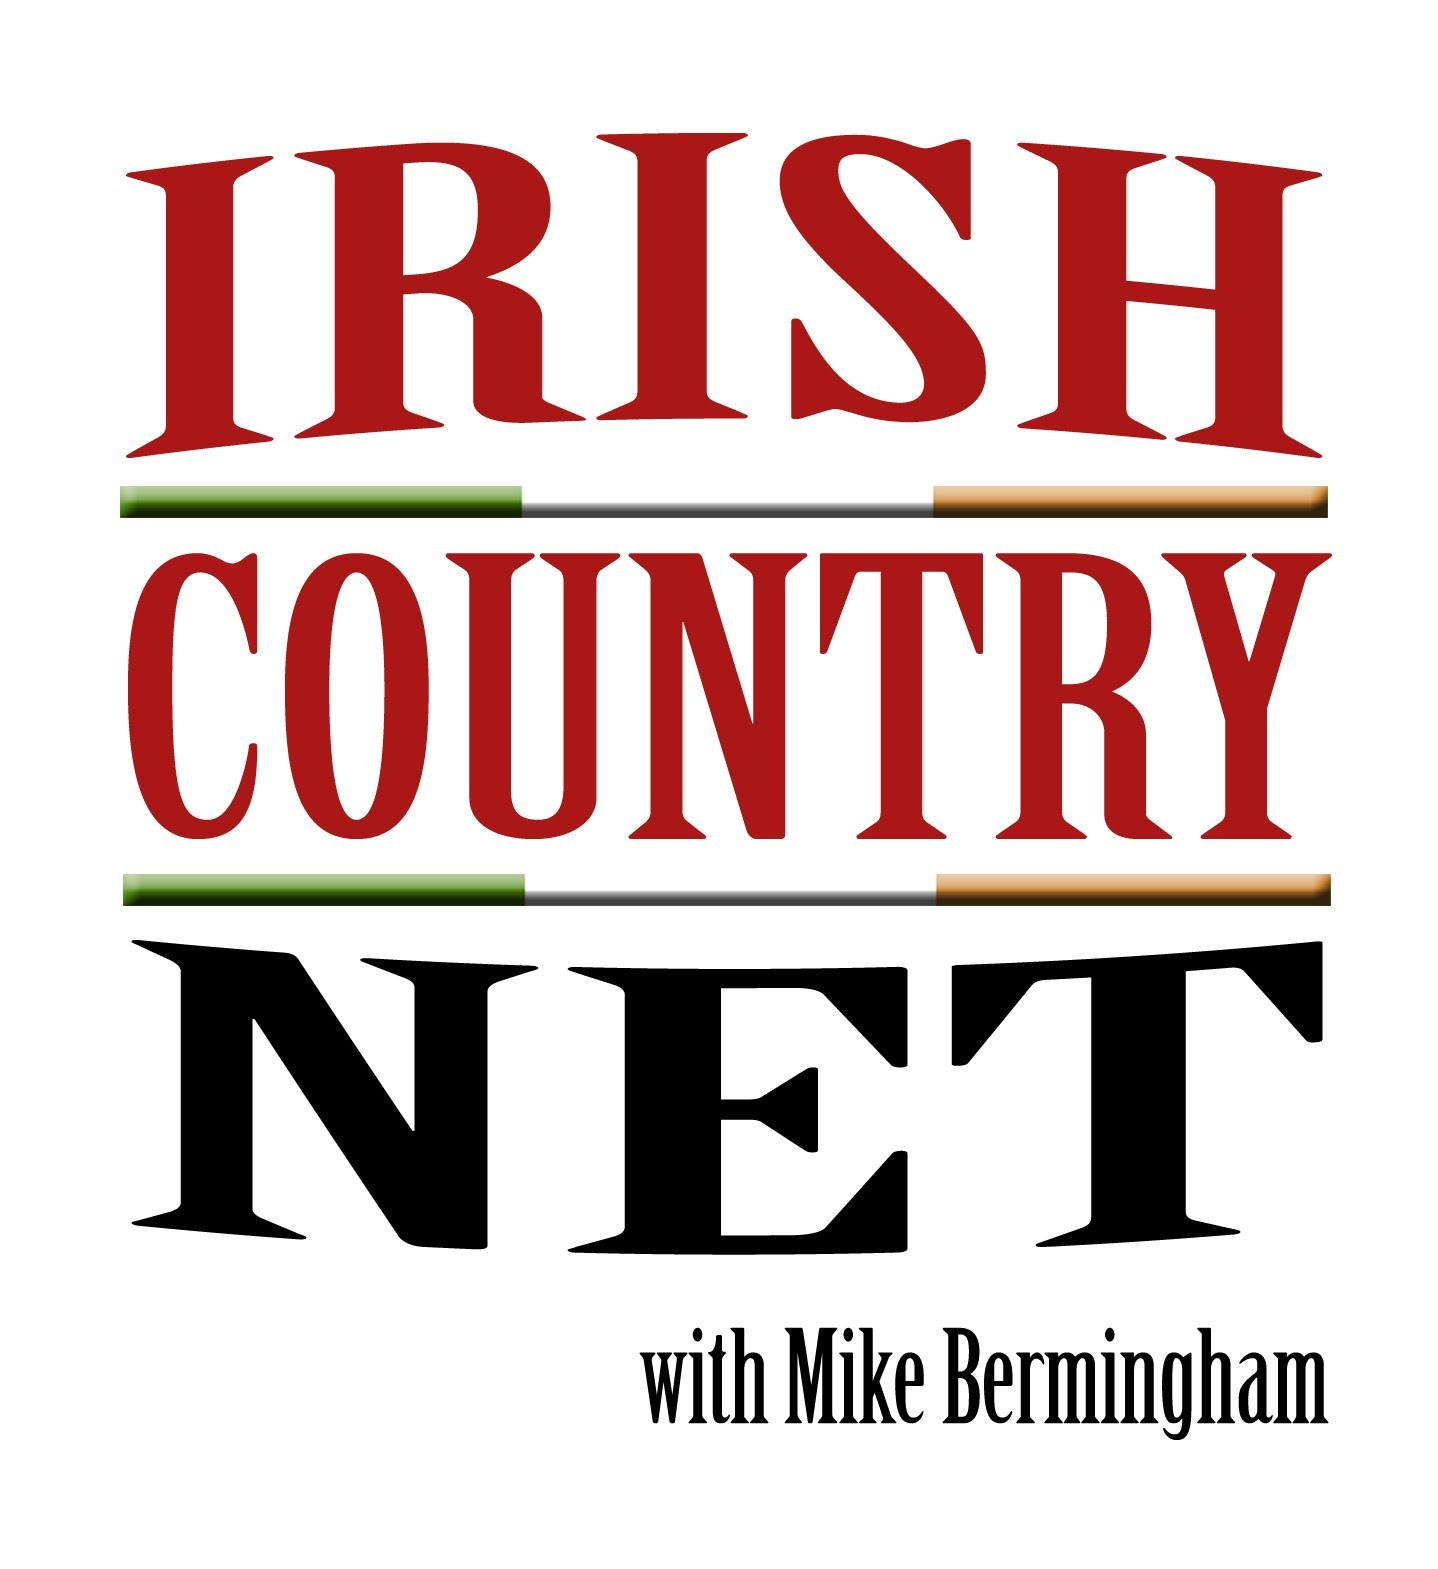 05 Irish Country Net Logo